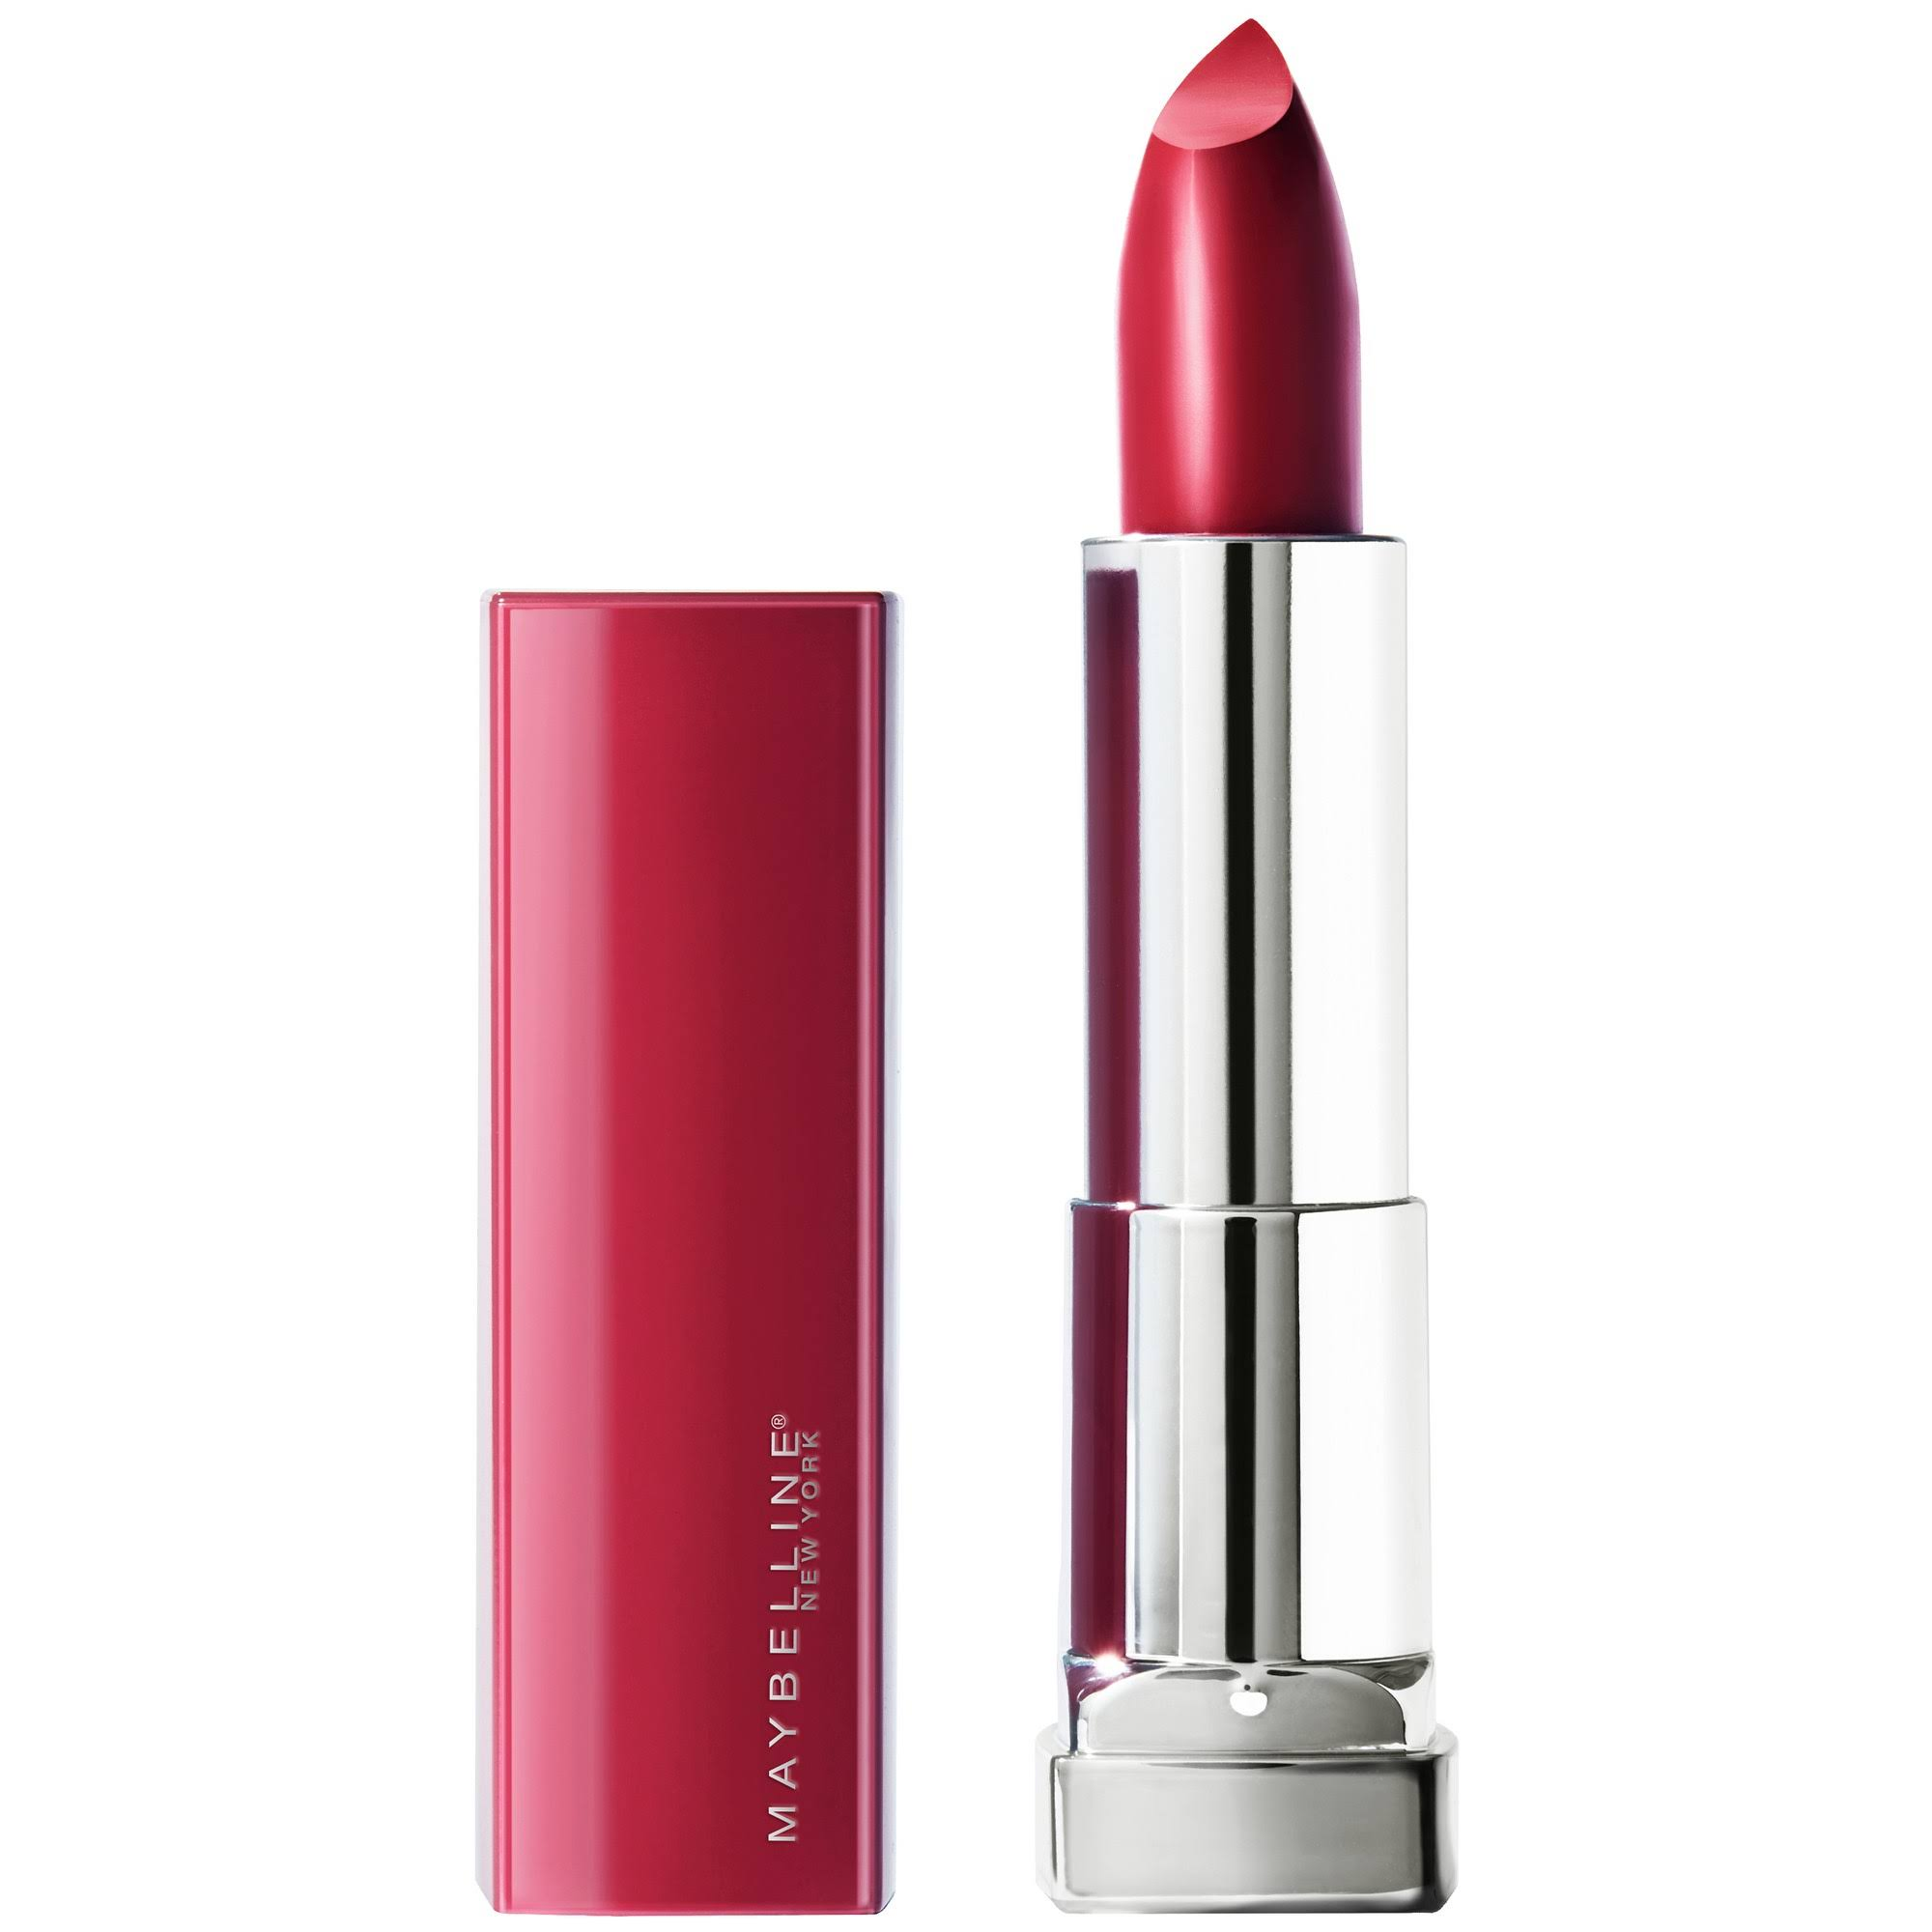 Maybelline Color Sensational Made for all Lipstick - 388 Plum for Me, 0.15oz